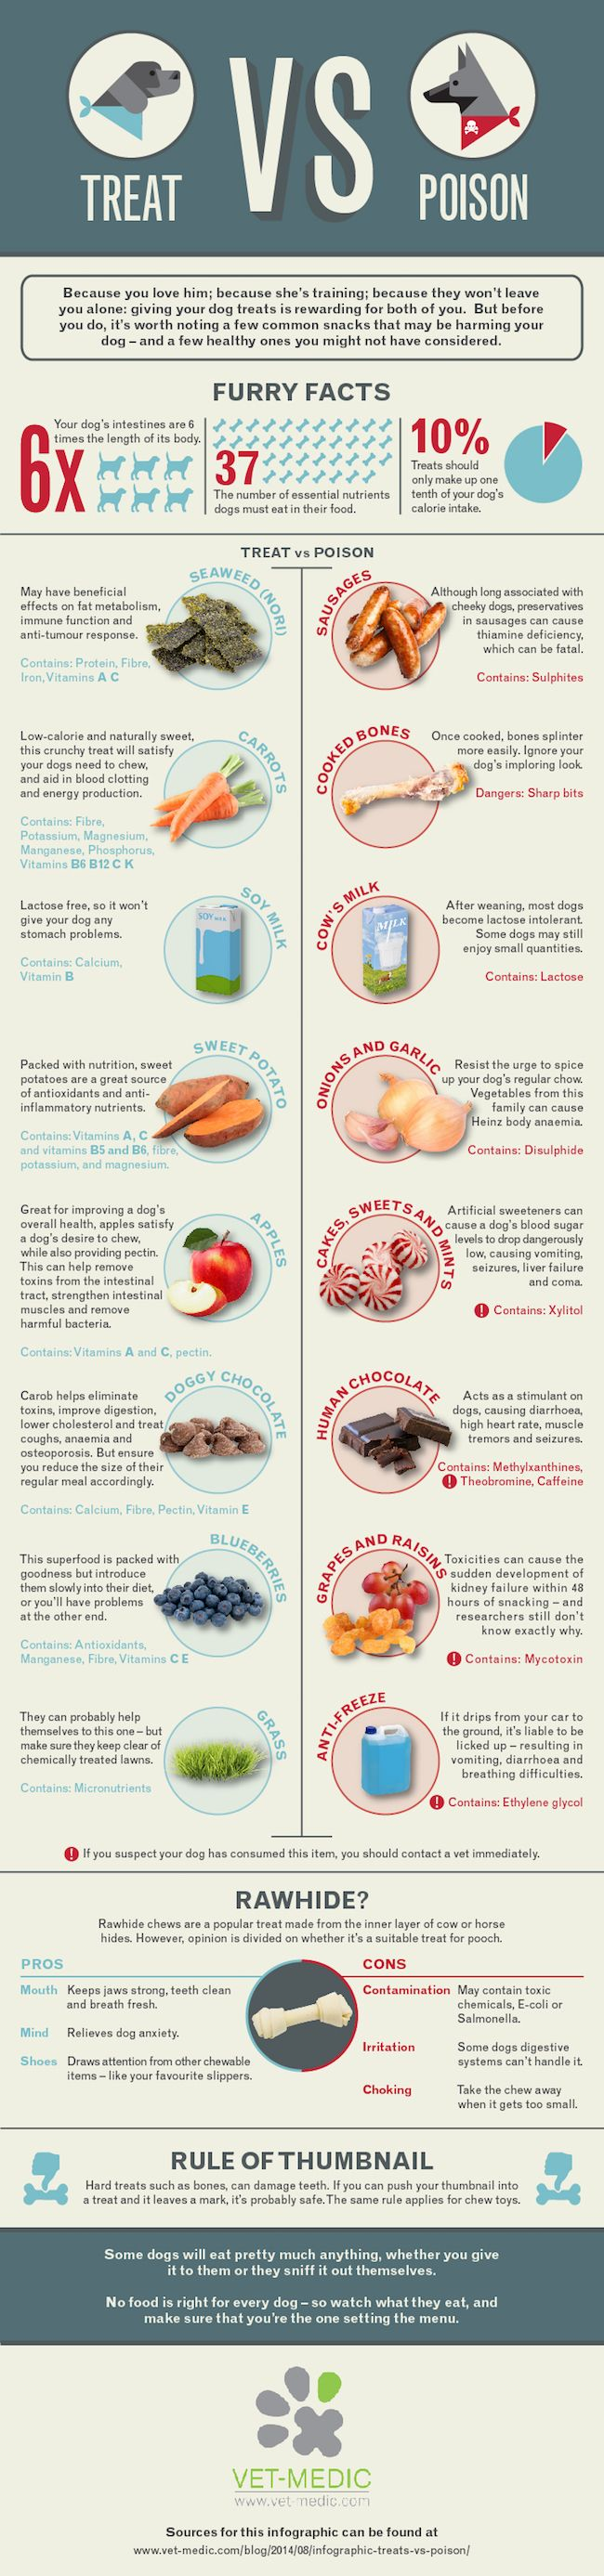 Infographic of good foods and bad foods for dogs. Carrots, apples and blueberries- good! Grapes, onions, garlic and chocolate - bad!